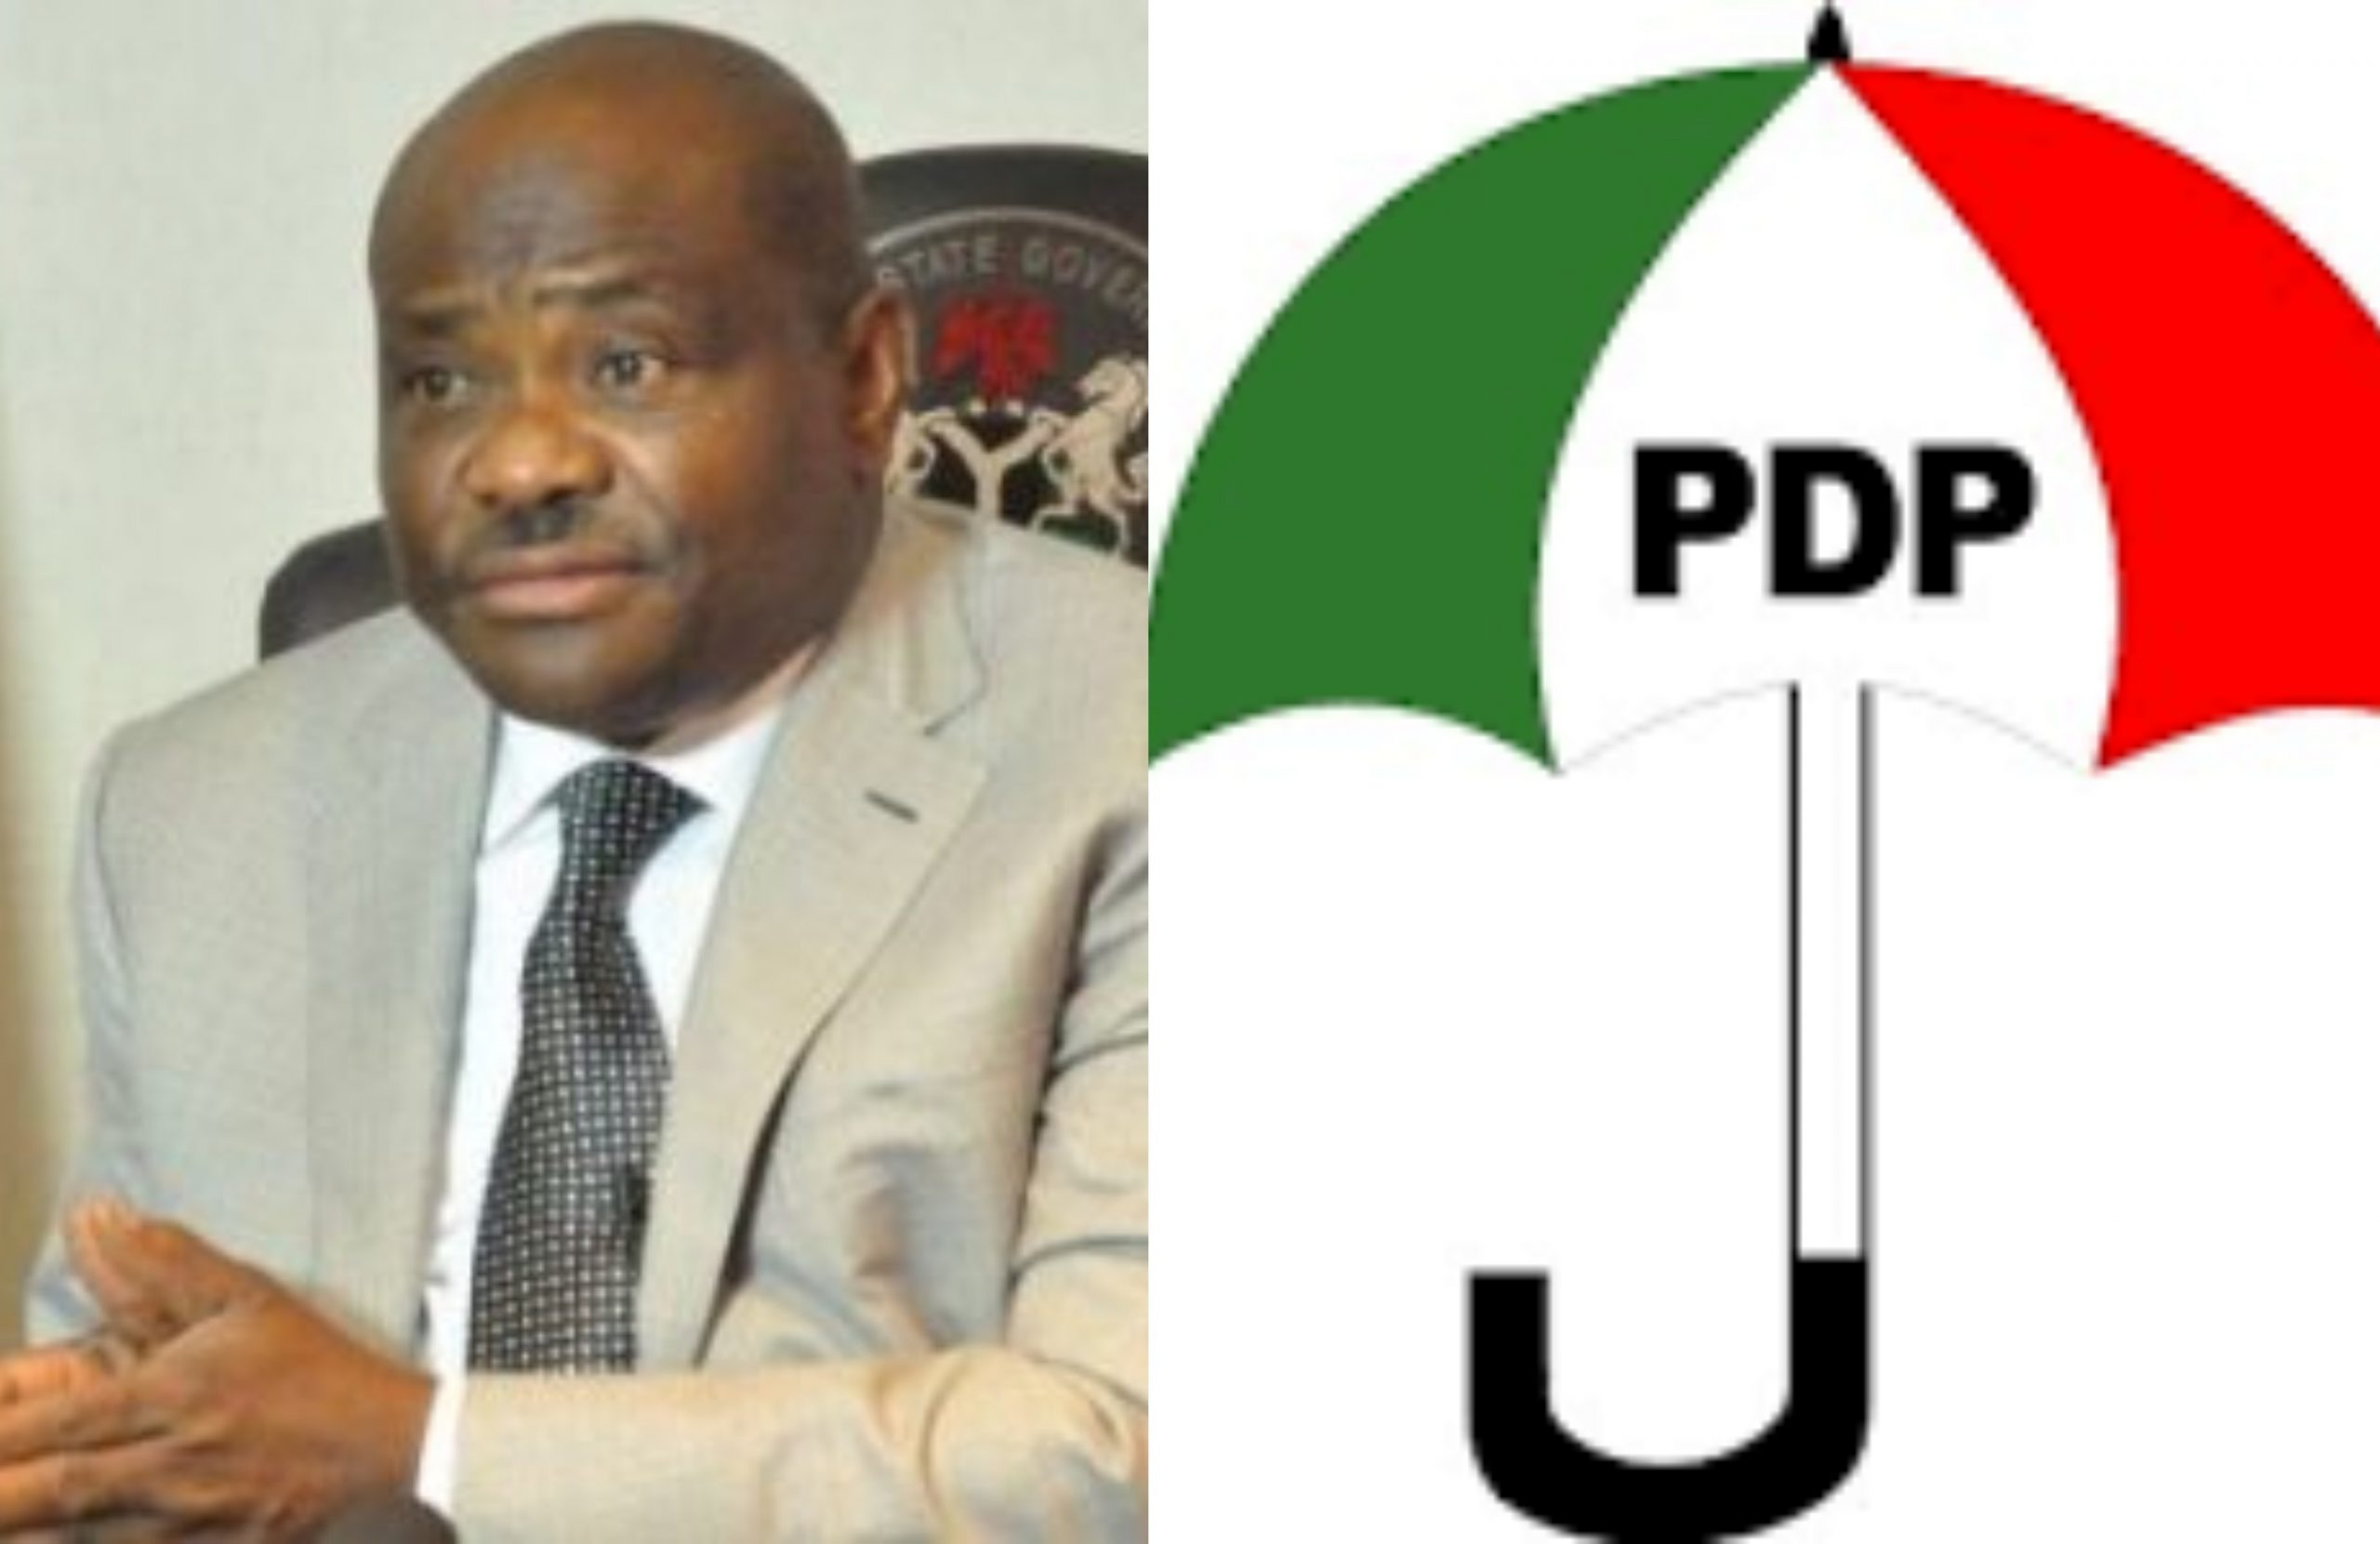 PDP Reacts After Governor Wike Called Their Leaders 'Tax Collectors'